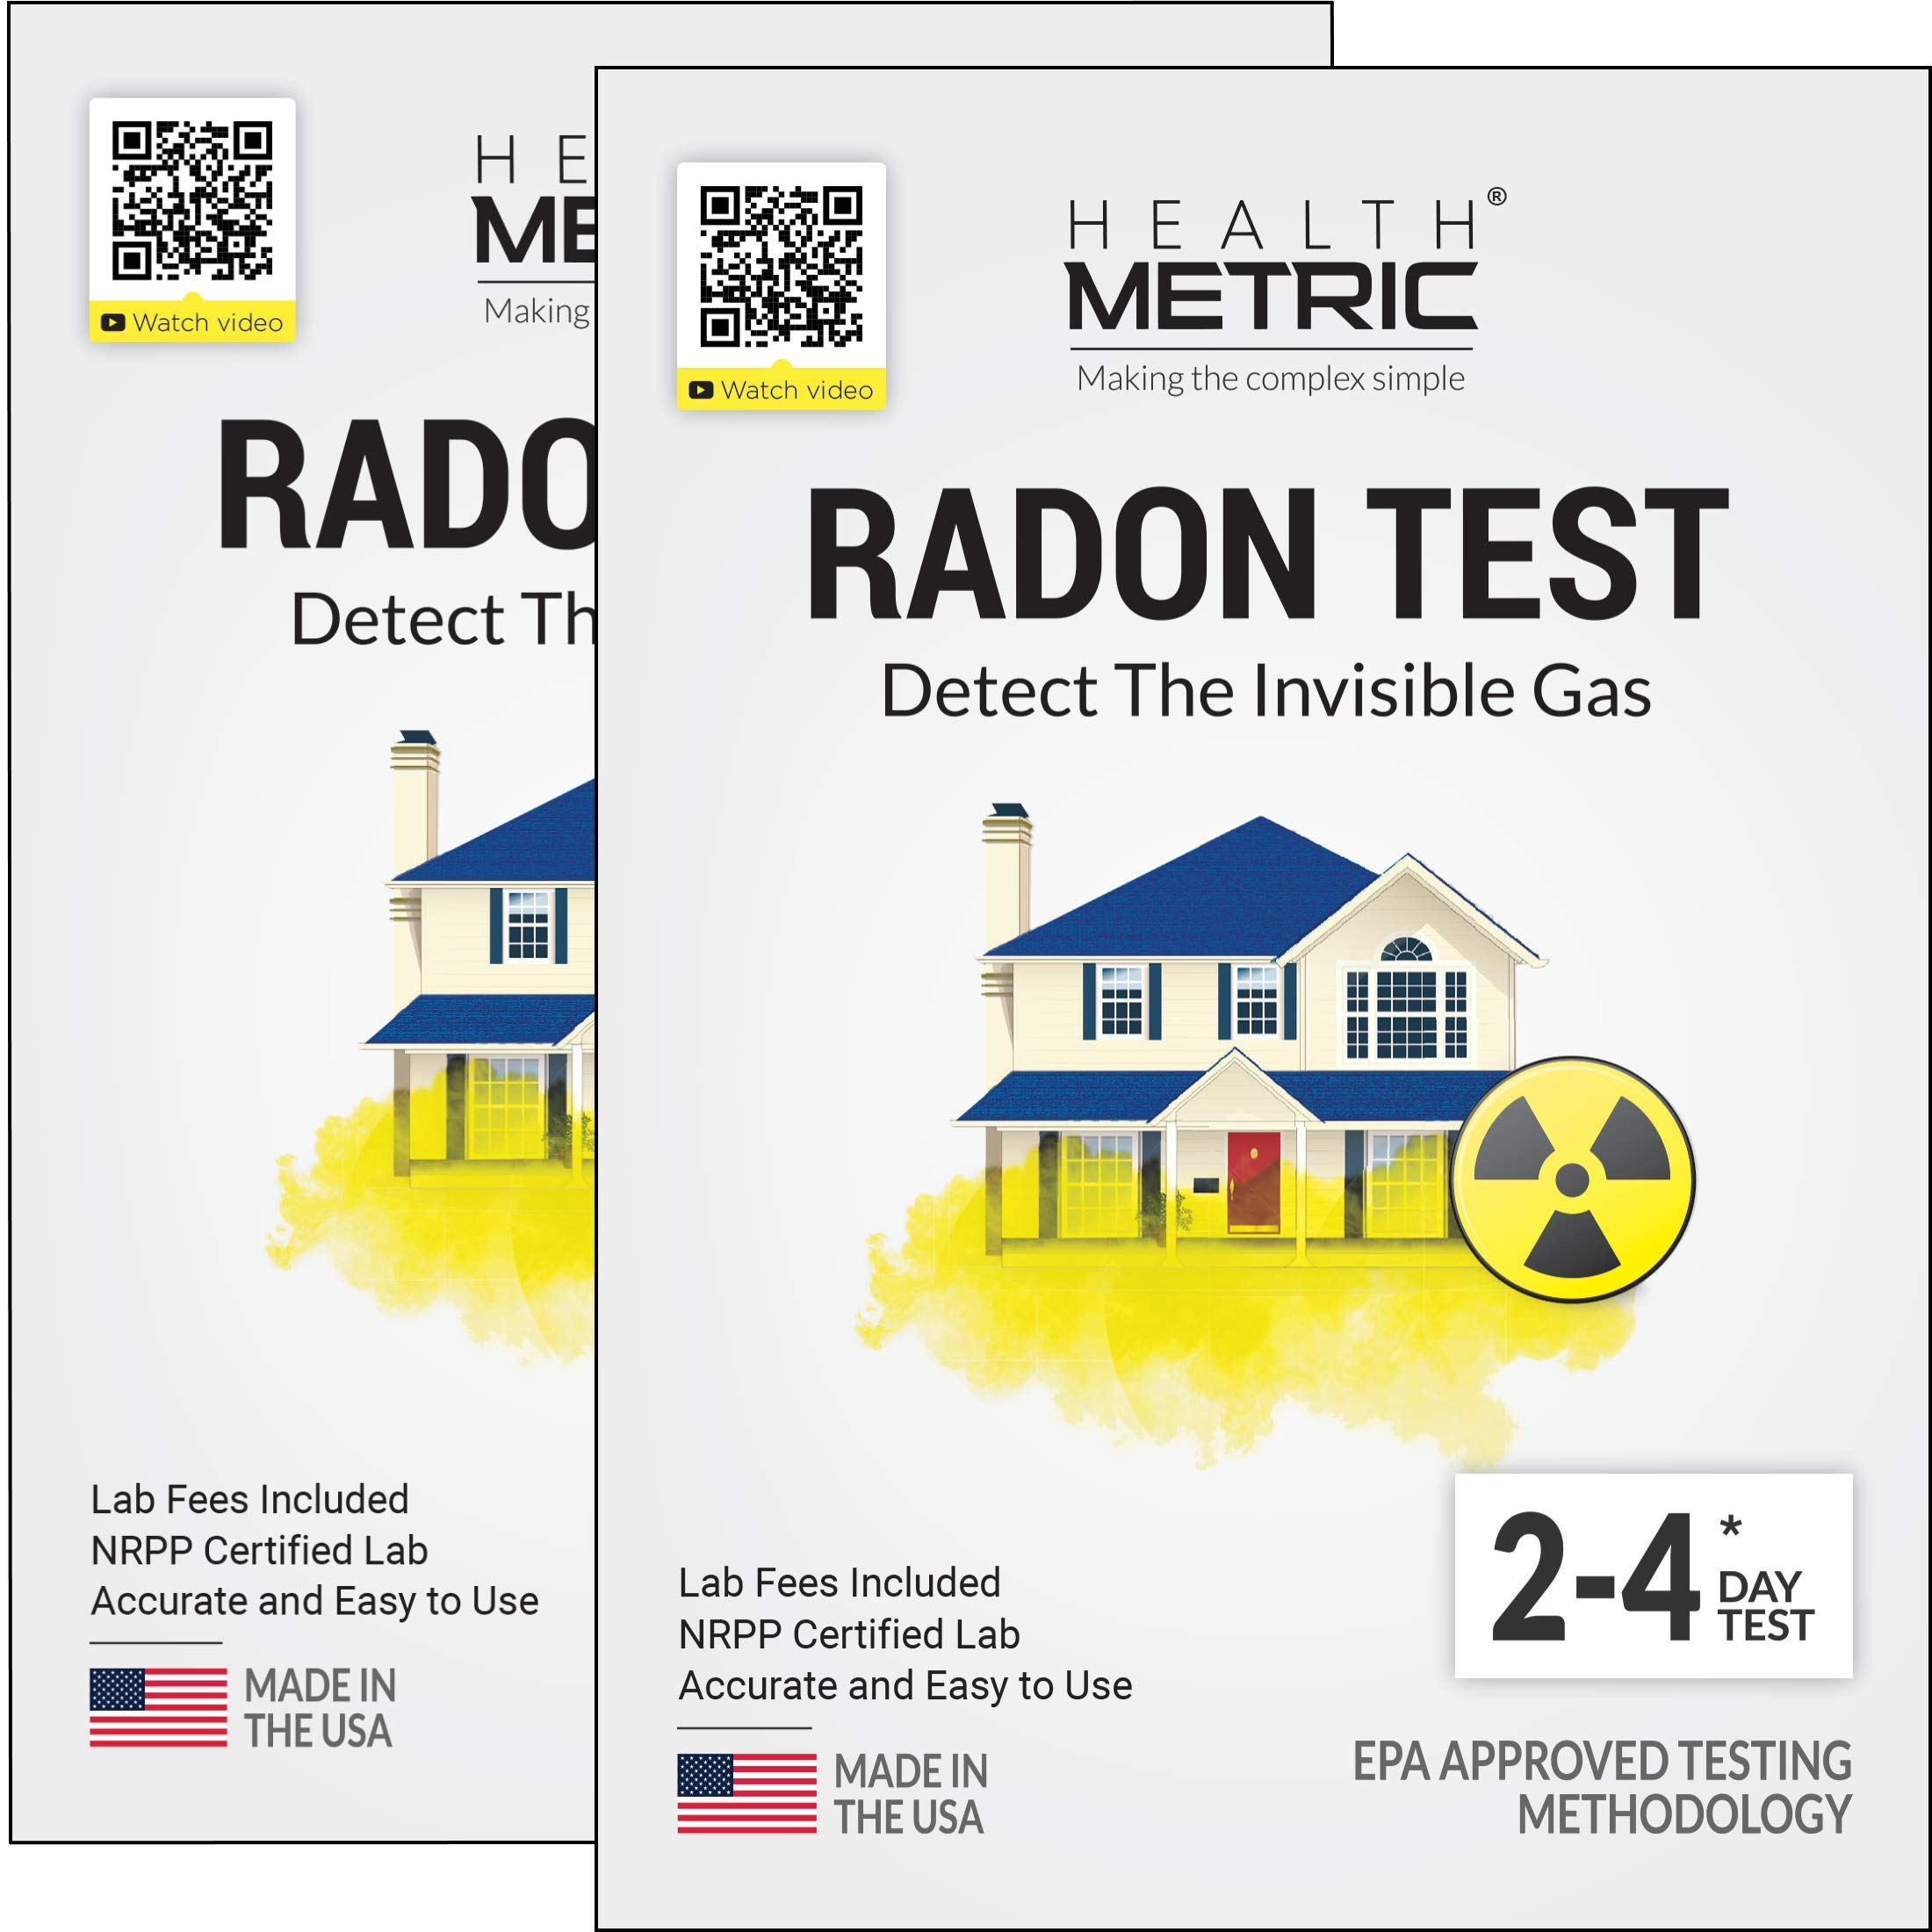 Radon Test Kit for Home - Easy to Use Charcoal Radon Gas Detector for Peace of Mind | 48-96h Short Term EPA Approved Radon Tester | Includes Lab Fees | Protect Yourself and Your Family | 2-Pack by Health Metric